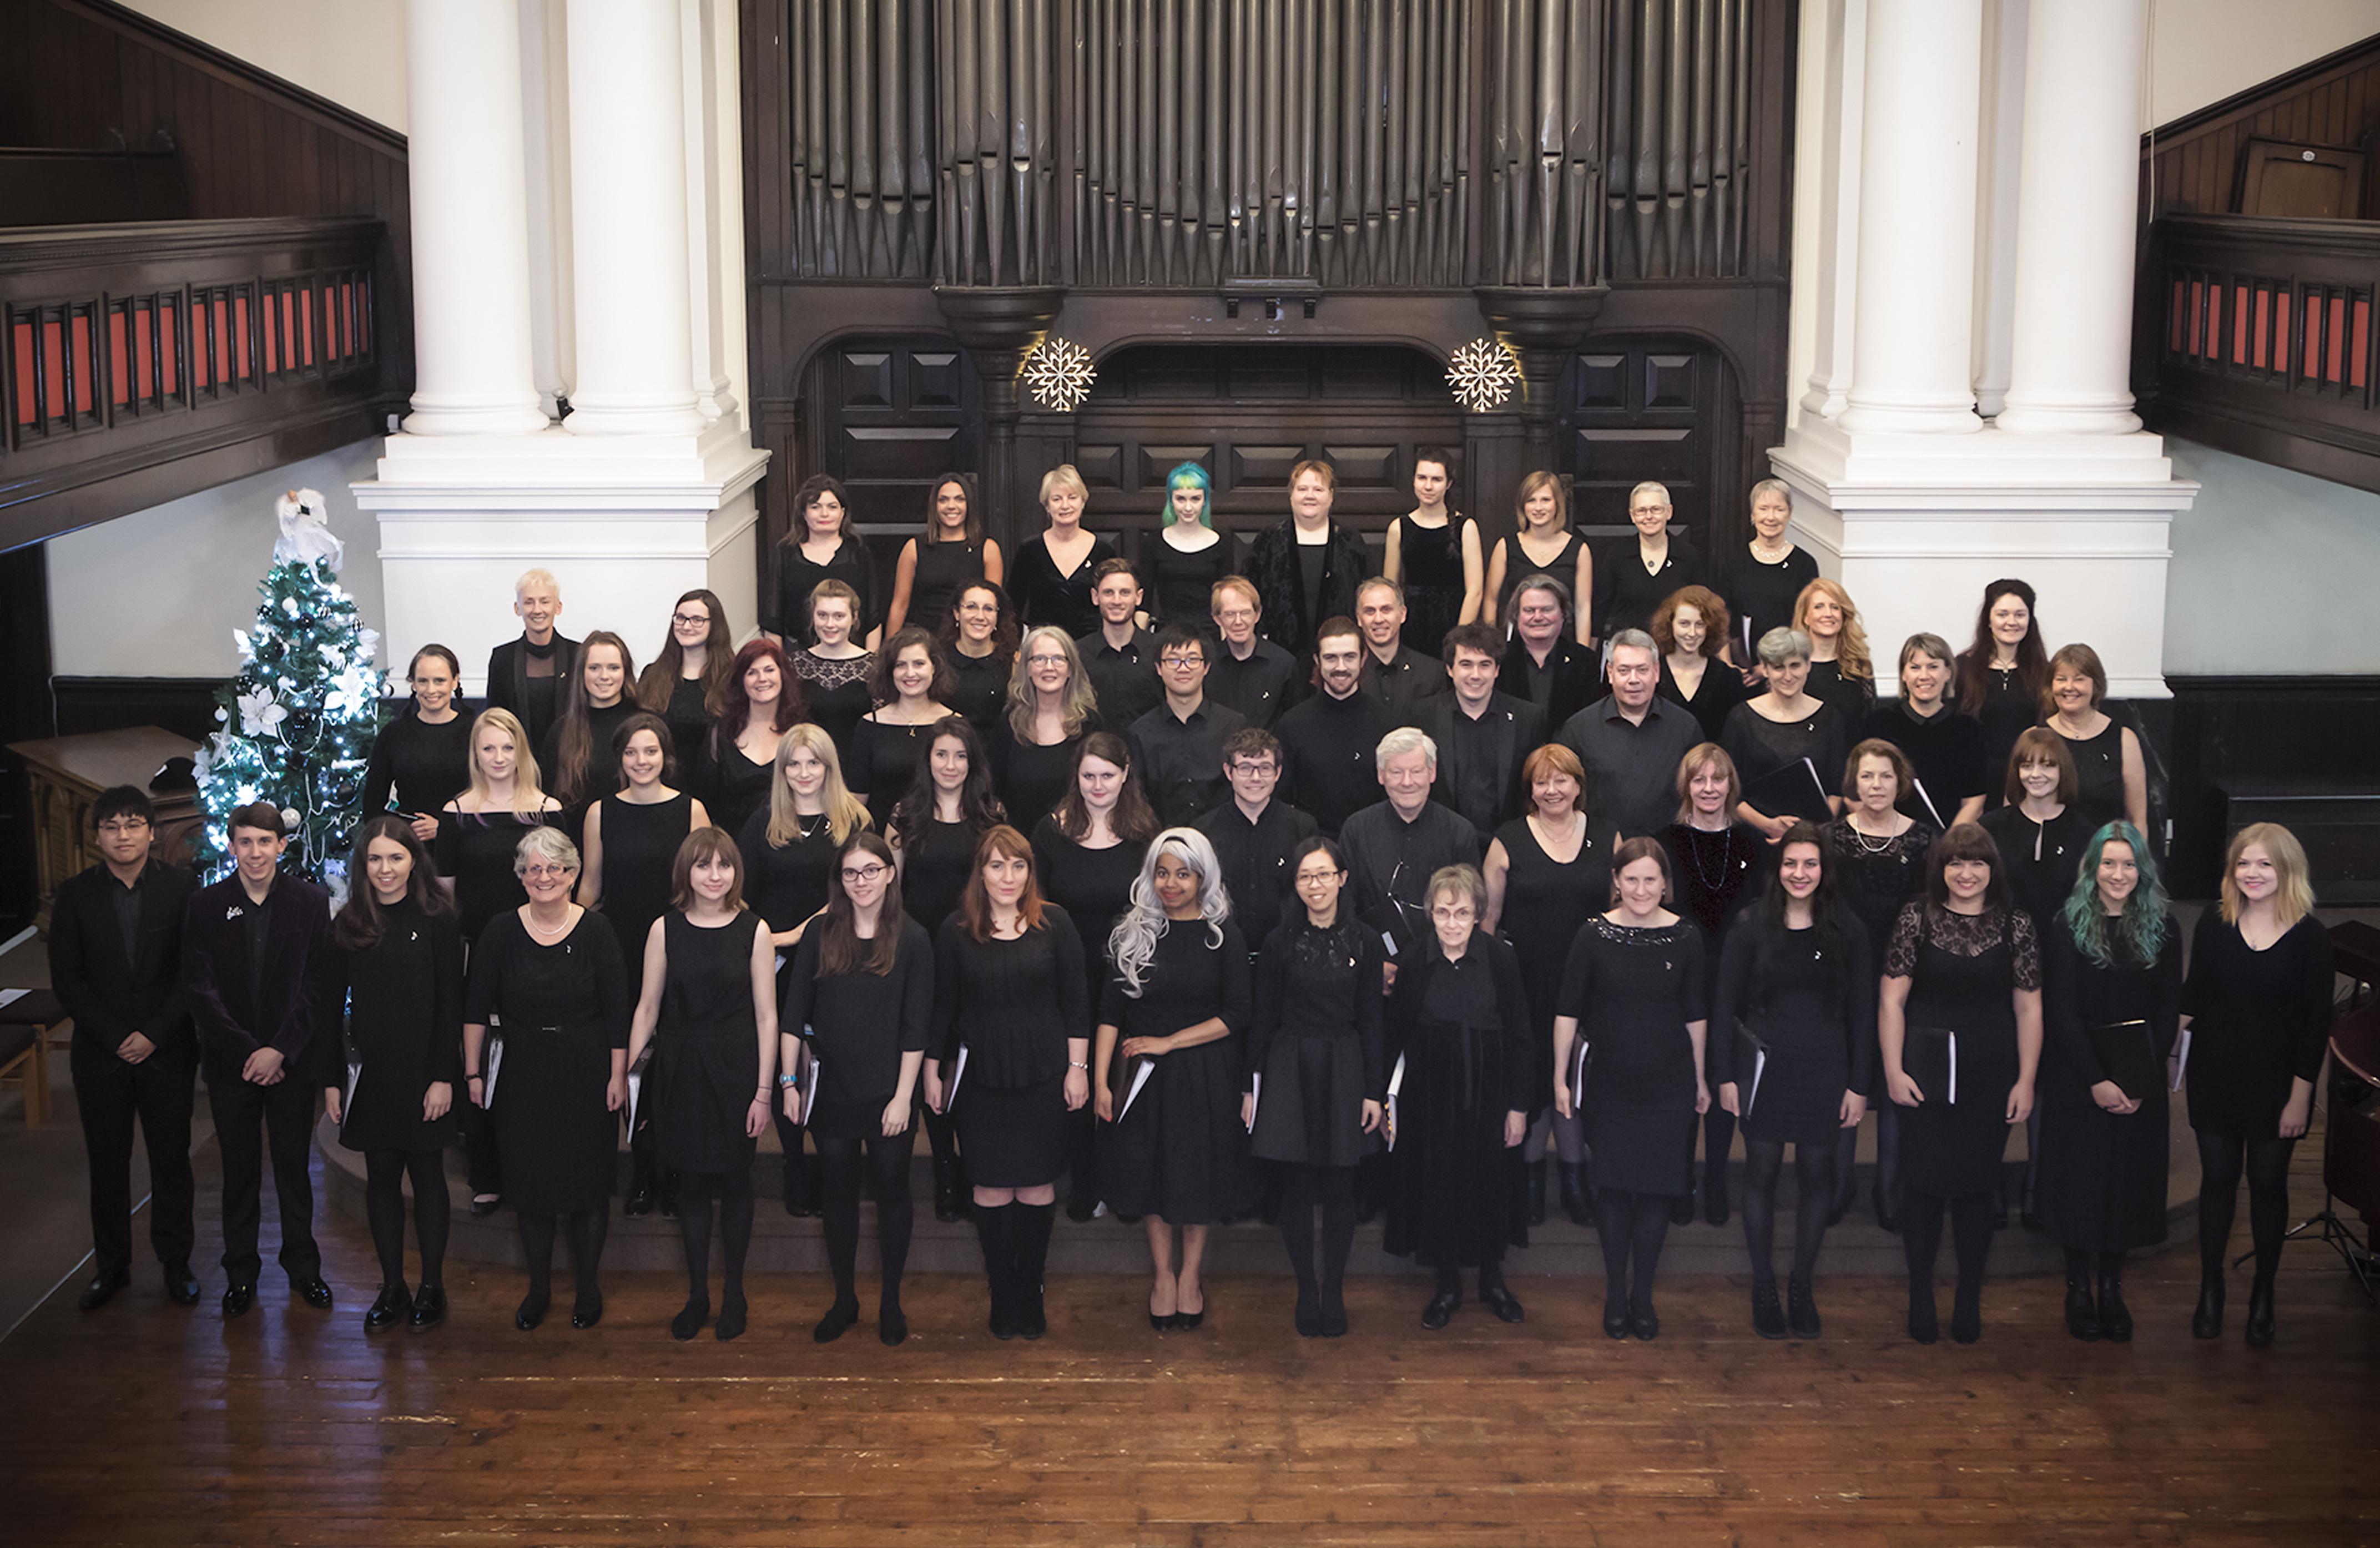 Previous Events - The Glasgow School of Art Choir